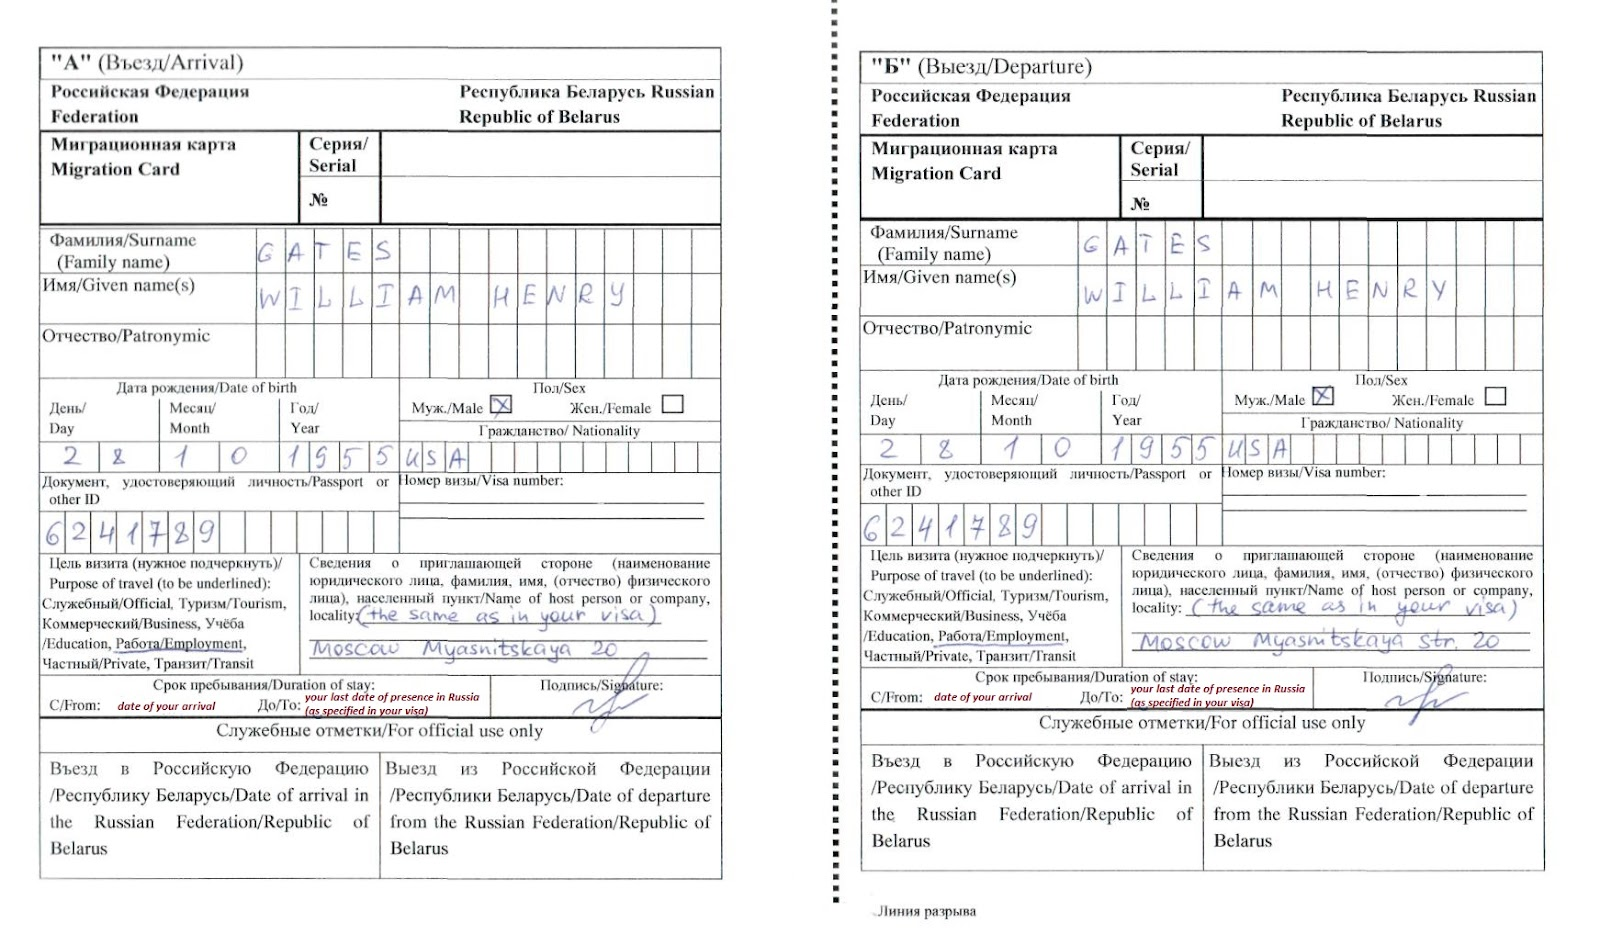 Russian migration card form